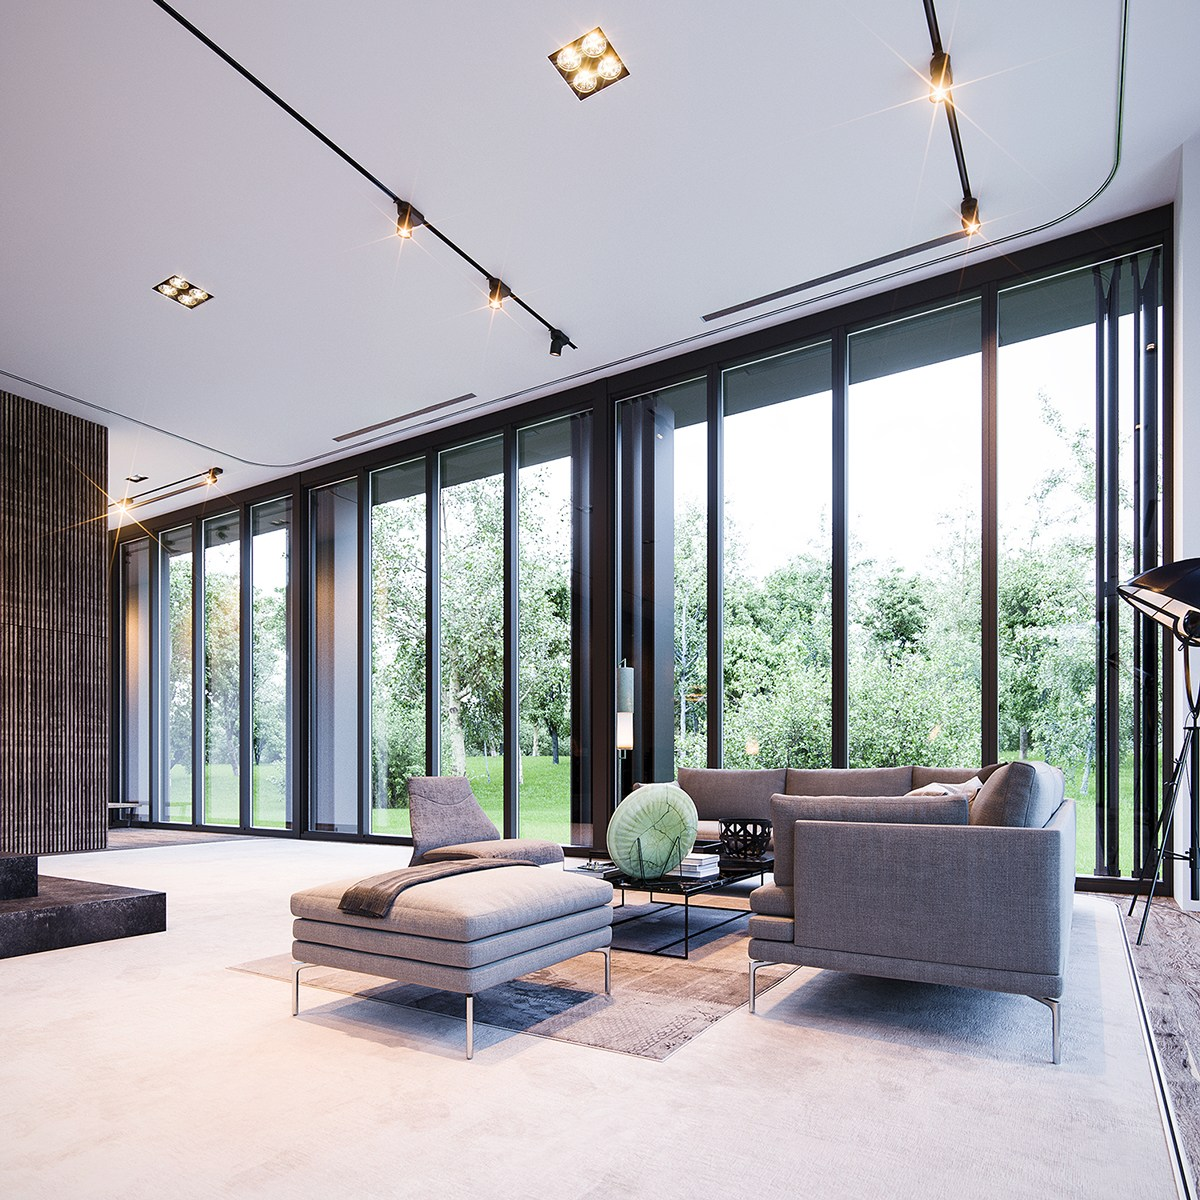 3 natural interior concepts with floor to ceiling windows for Home to win designers